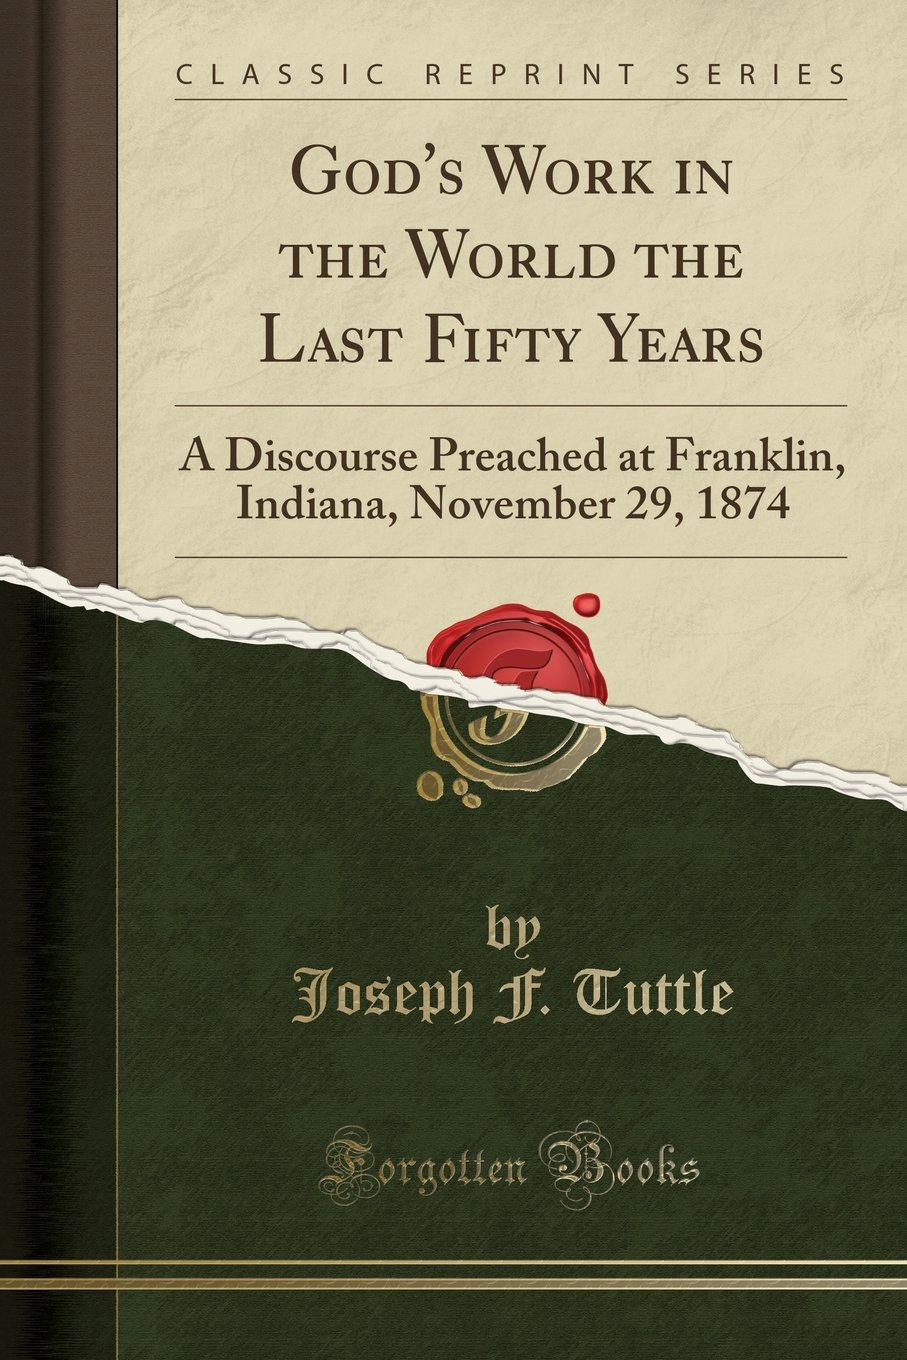 God's Work in the World the Last Fifty Years: A Discourse Preached at Franklin, Indiana, November 29, 1874 (Classic Reprint) pdf epub